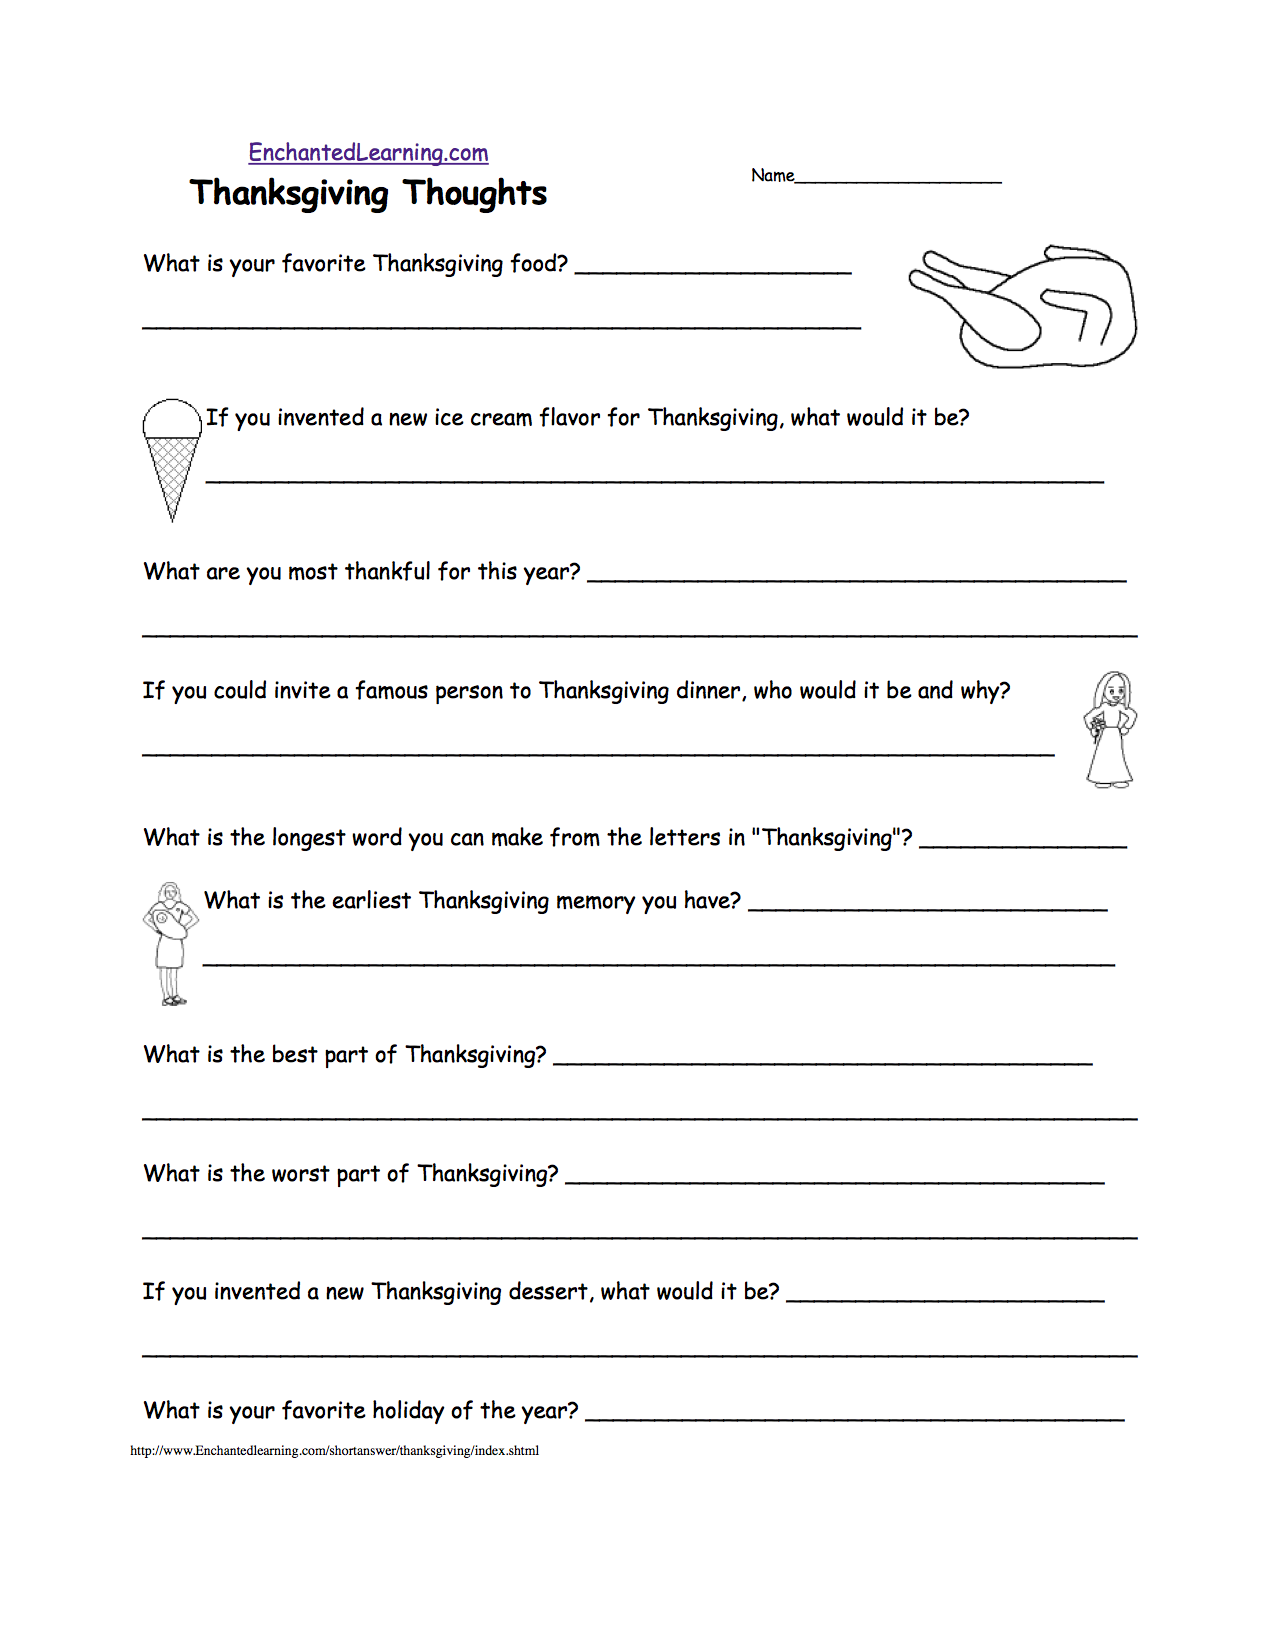 Worksheets Thanksgiving Worksheet thanksgiving crafts worksheets and activities thanksgiving